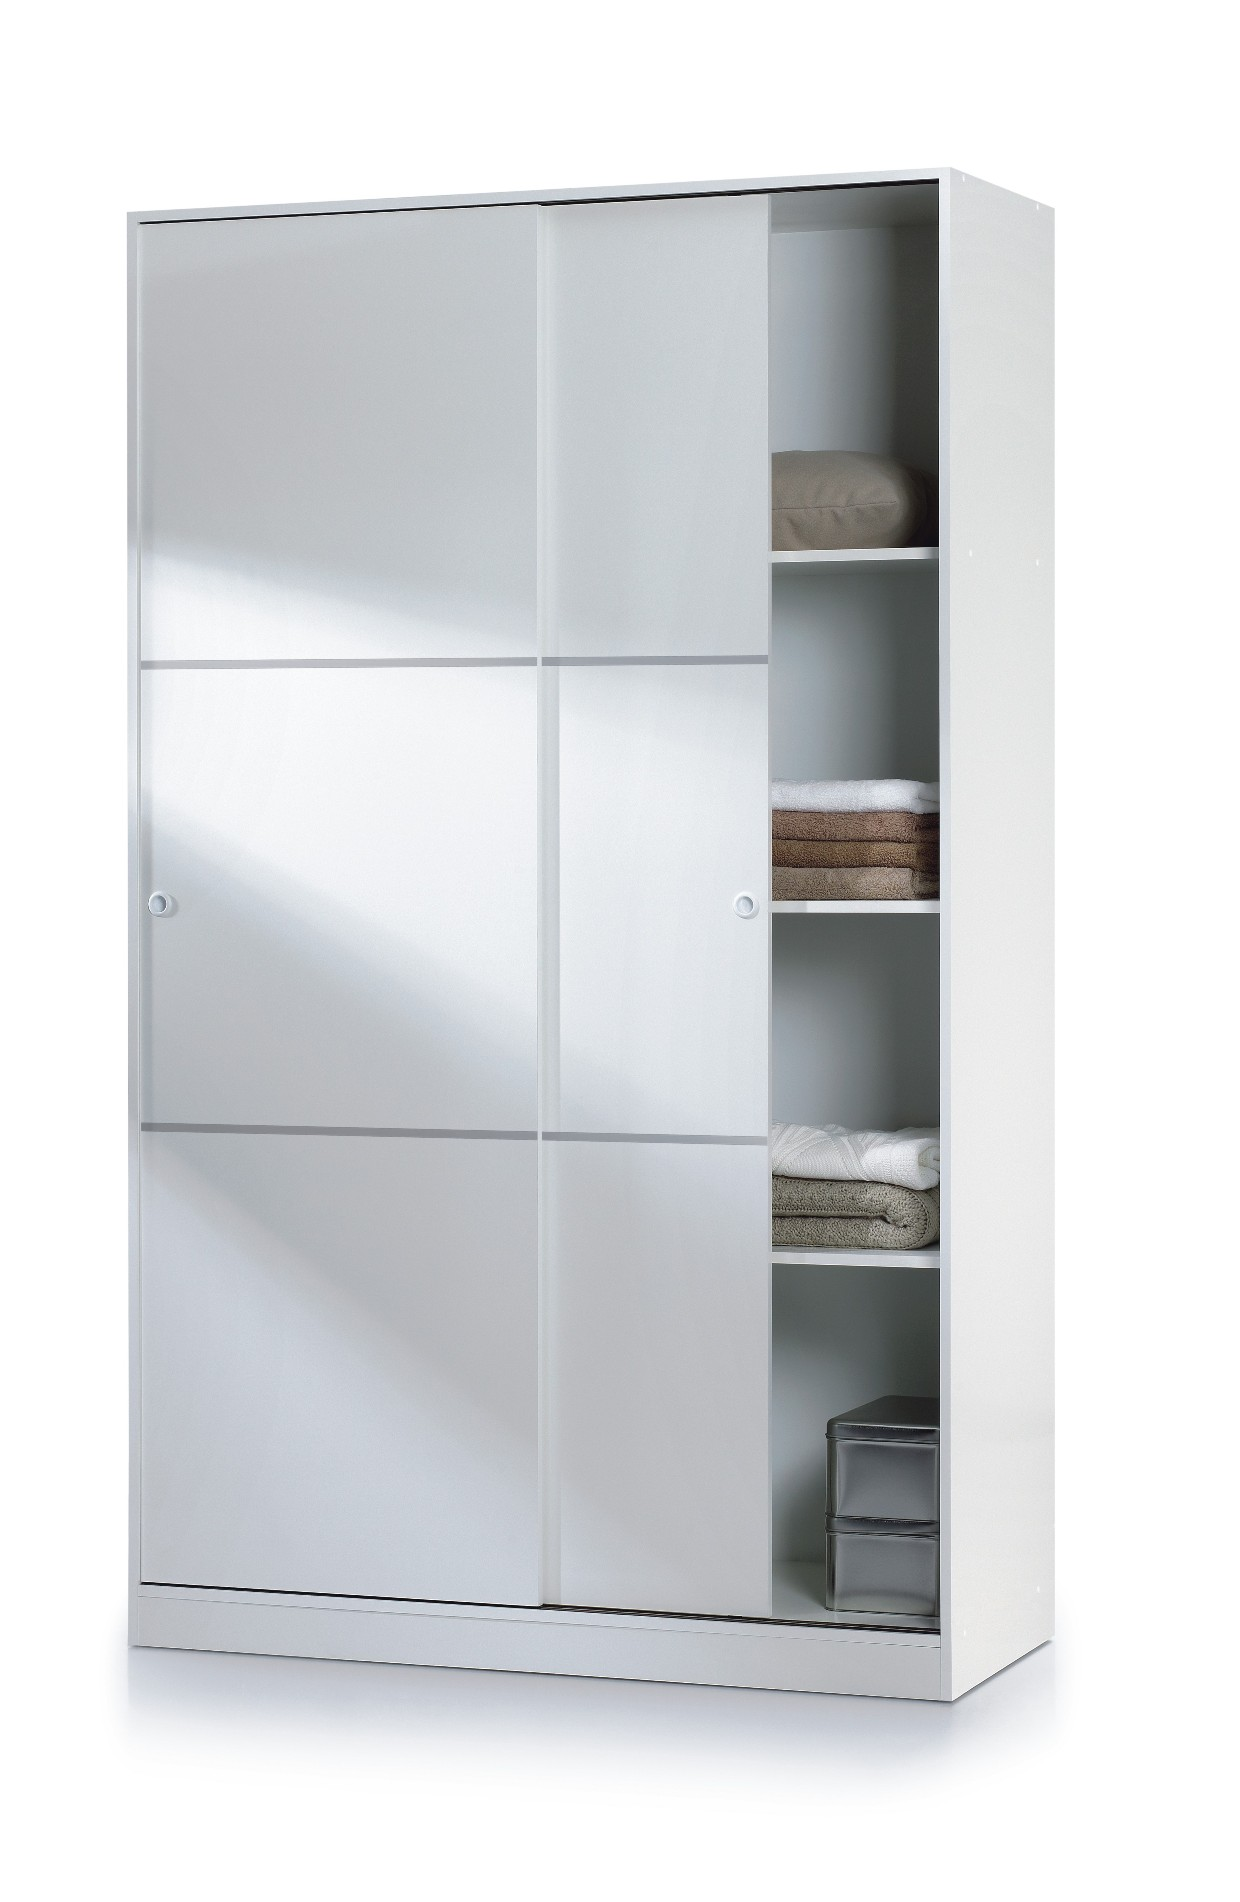 Le Meilleur Sliding Wardrobes Uk White High Gloss Wardrobe Wardrobe Ce Mois Ci